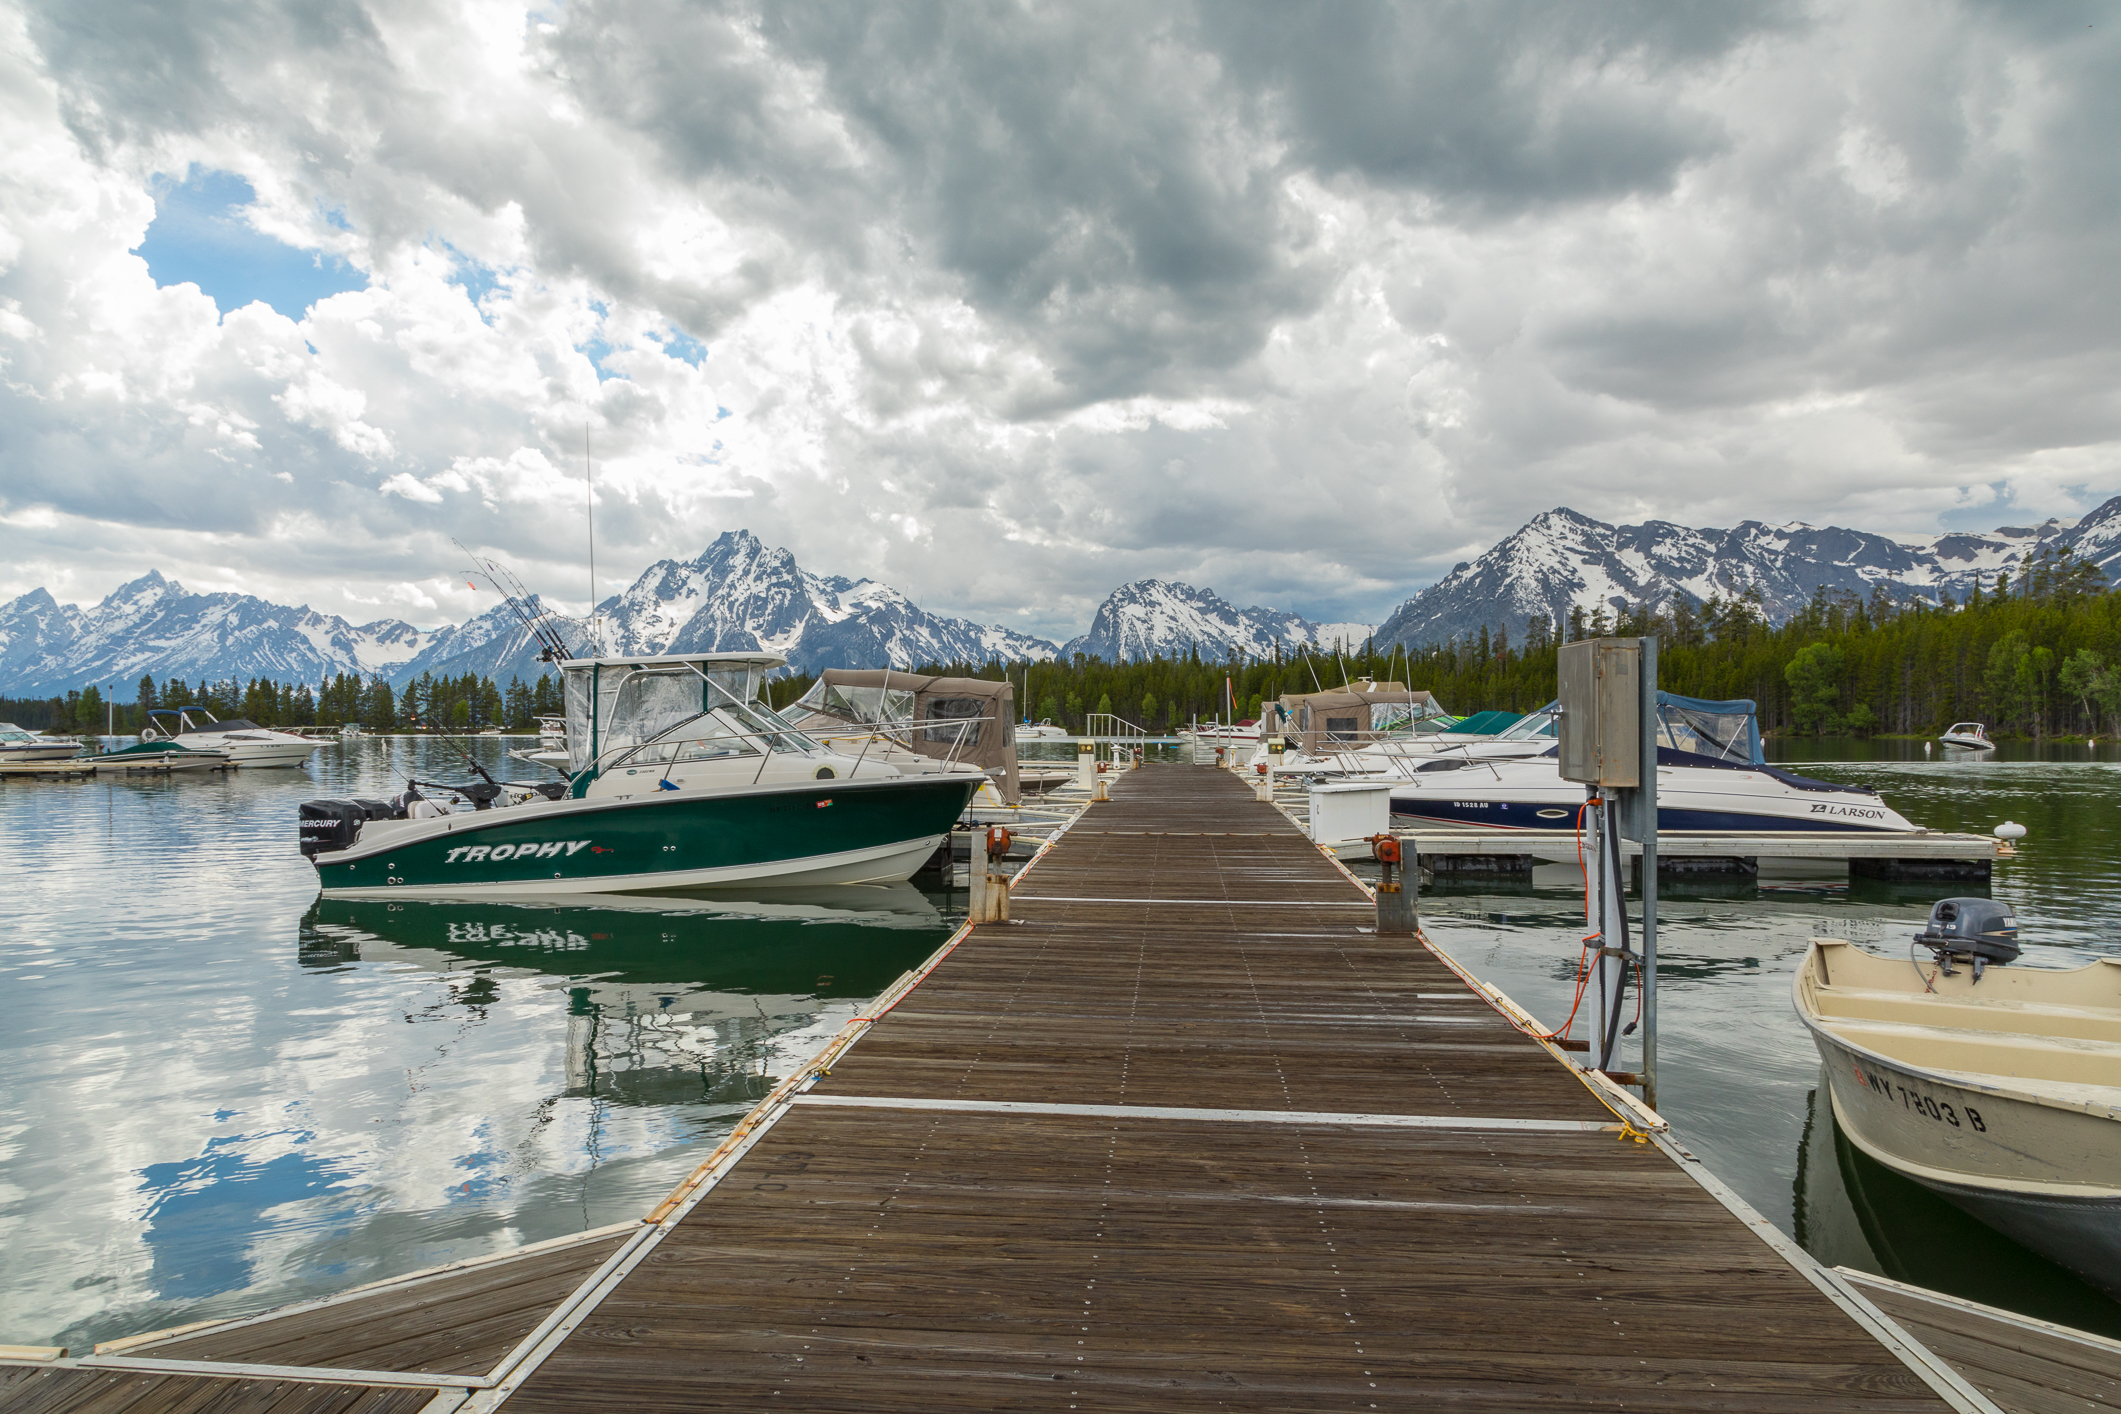 Colter Bay, Image # 3409